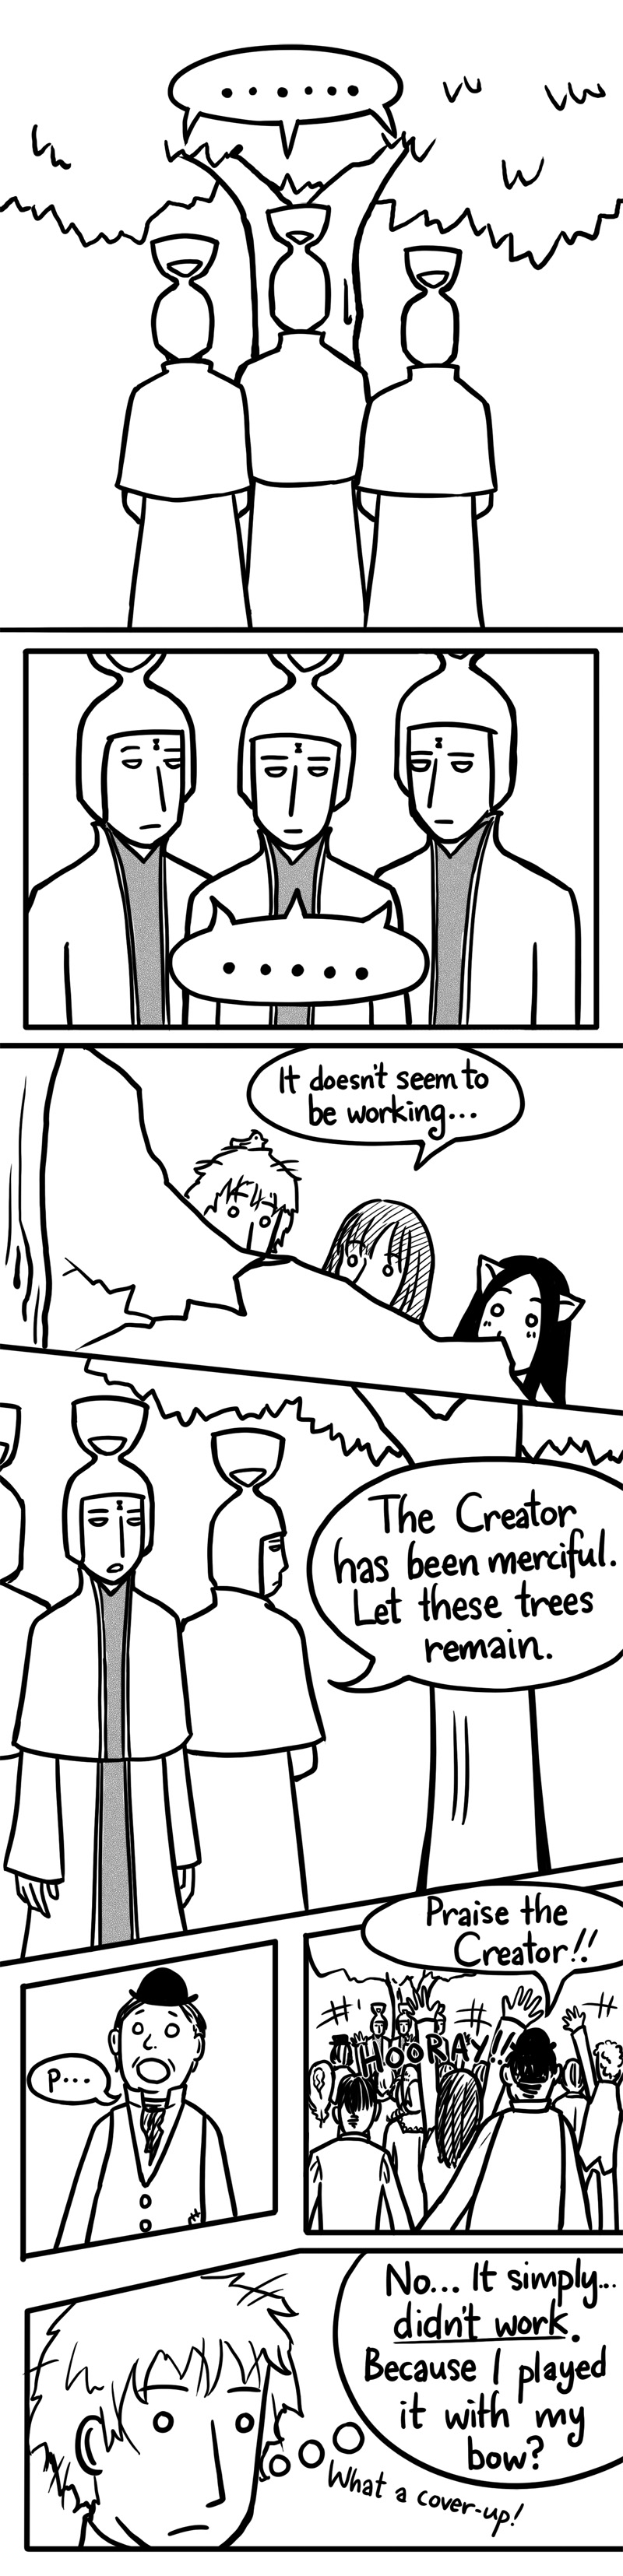 comic-2012-02-23-Cover-Up.jpg